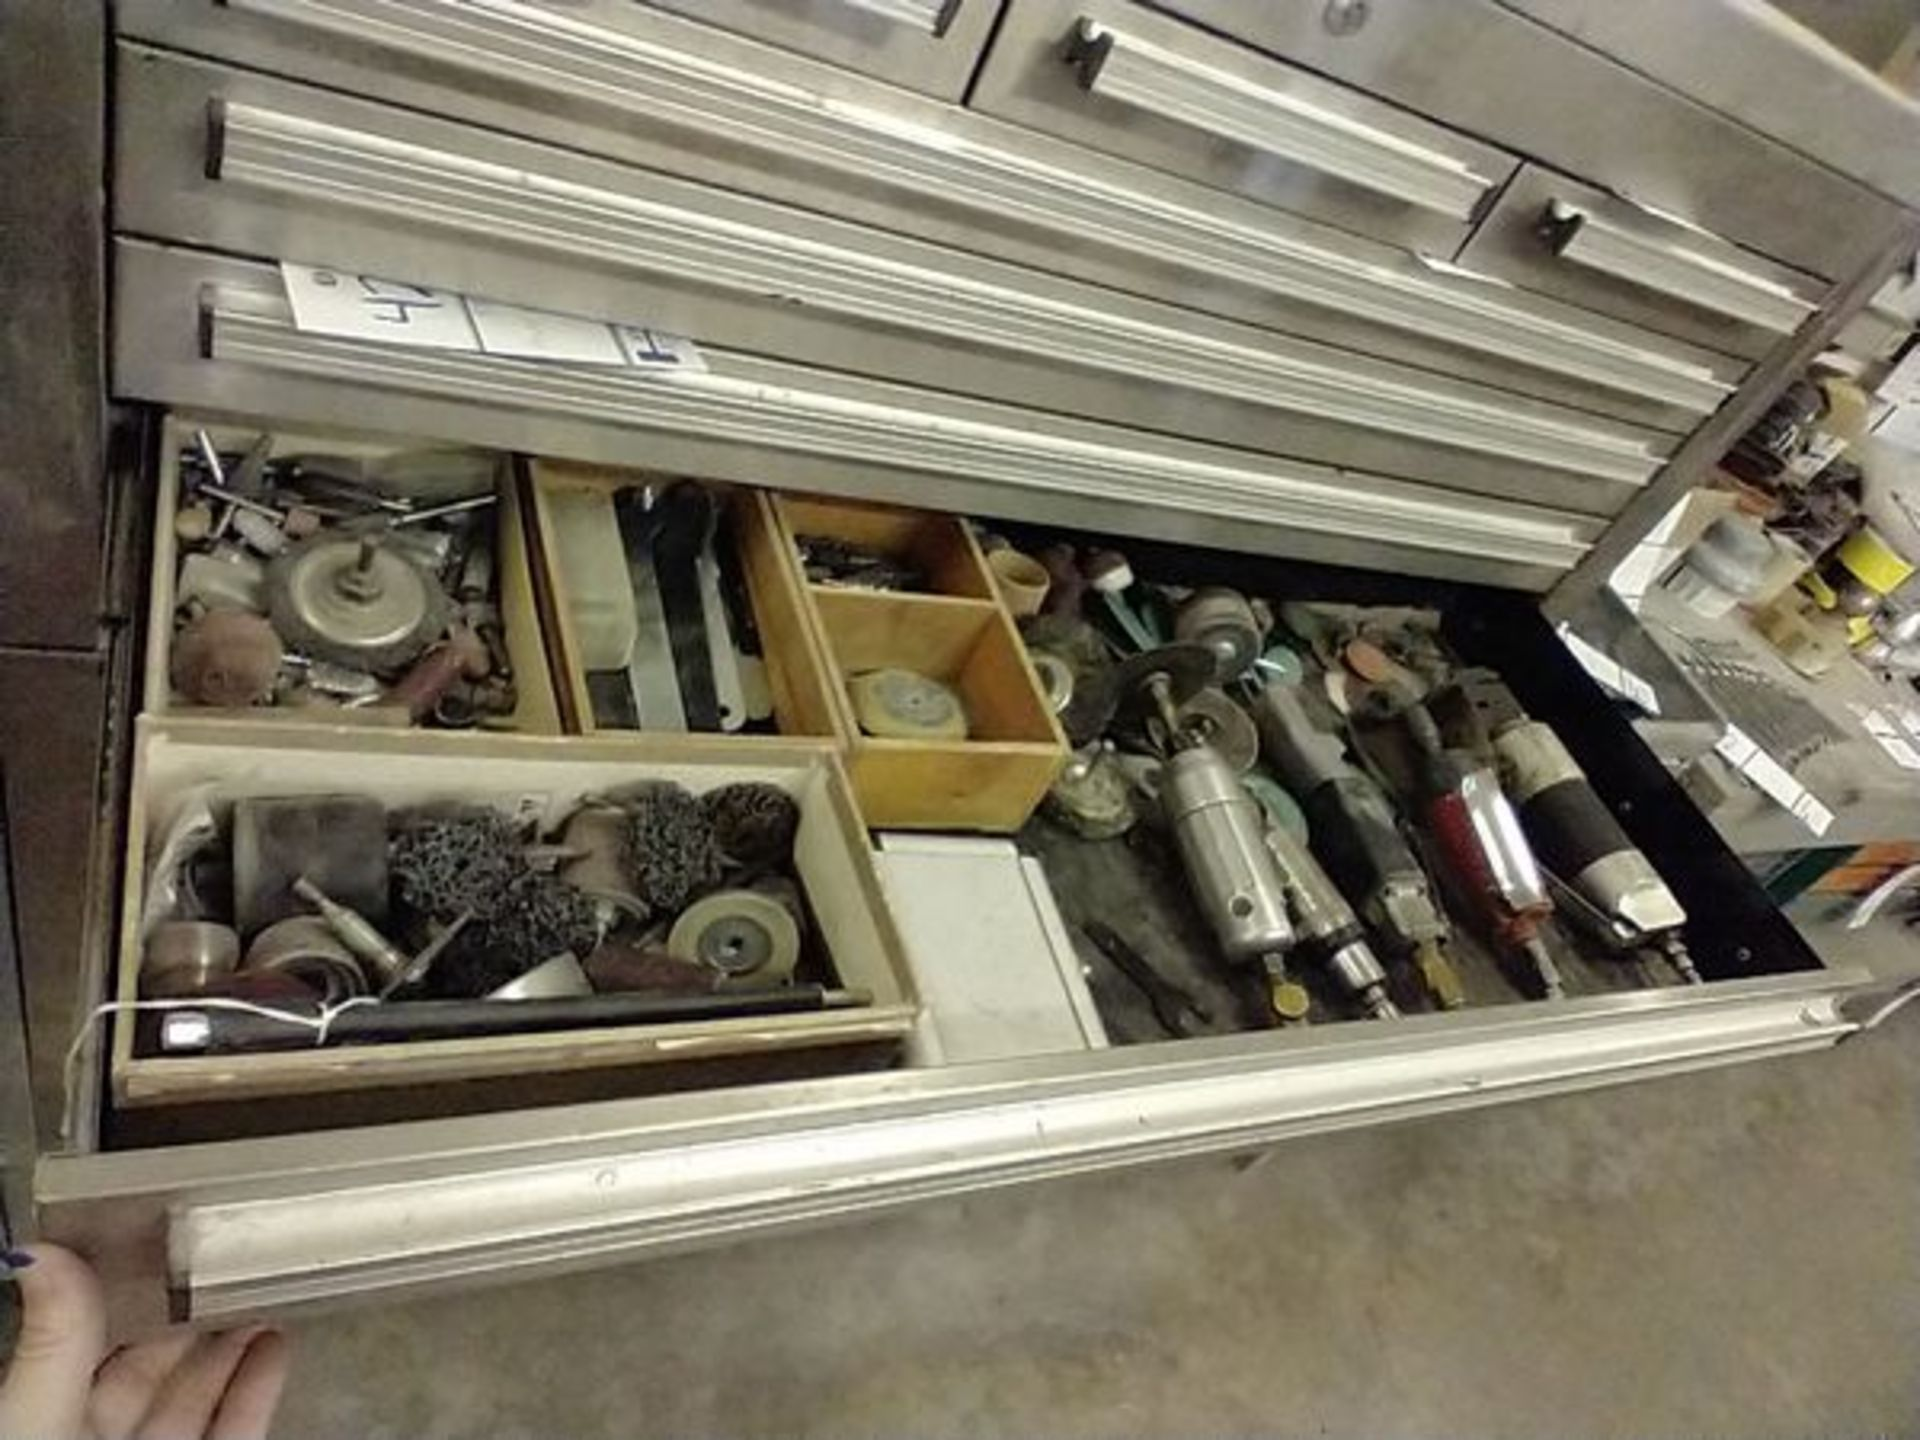 ASSORTED PNEUMATIC TOOLS WITH CONTENTS OF DRAWER